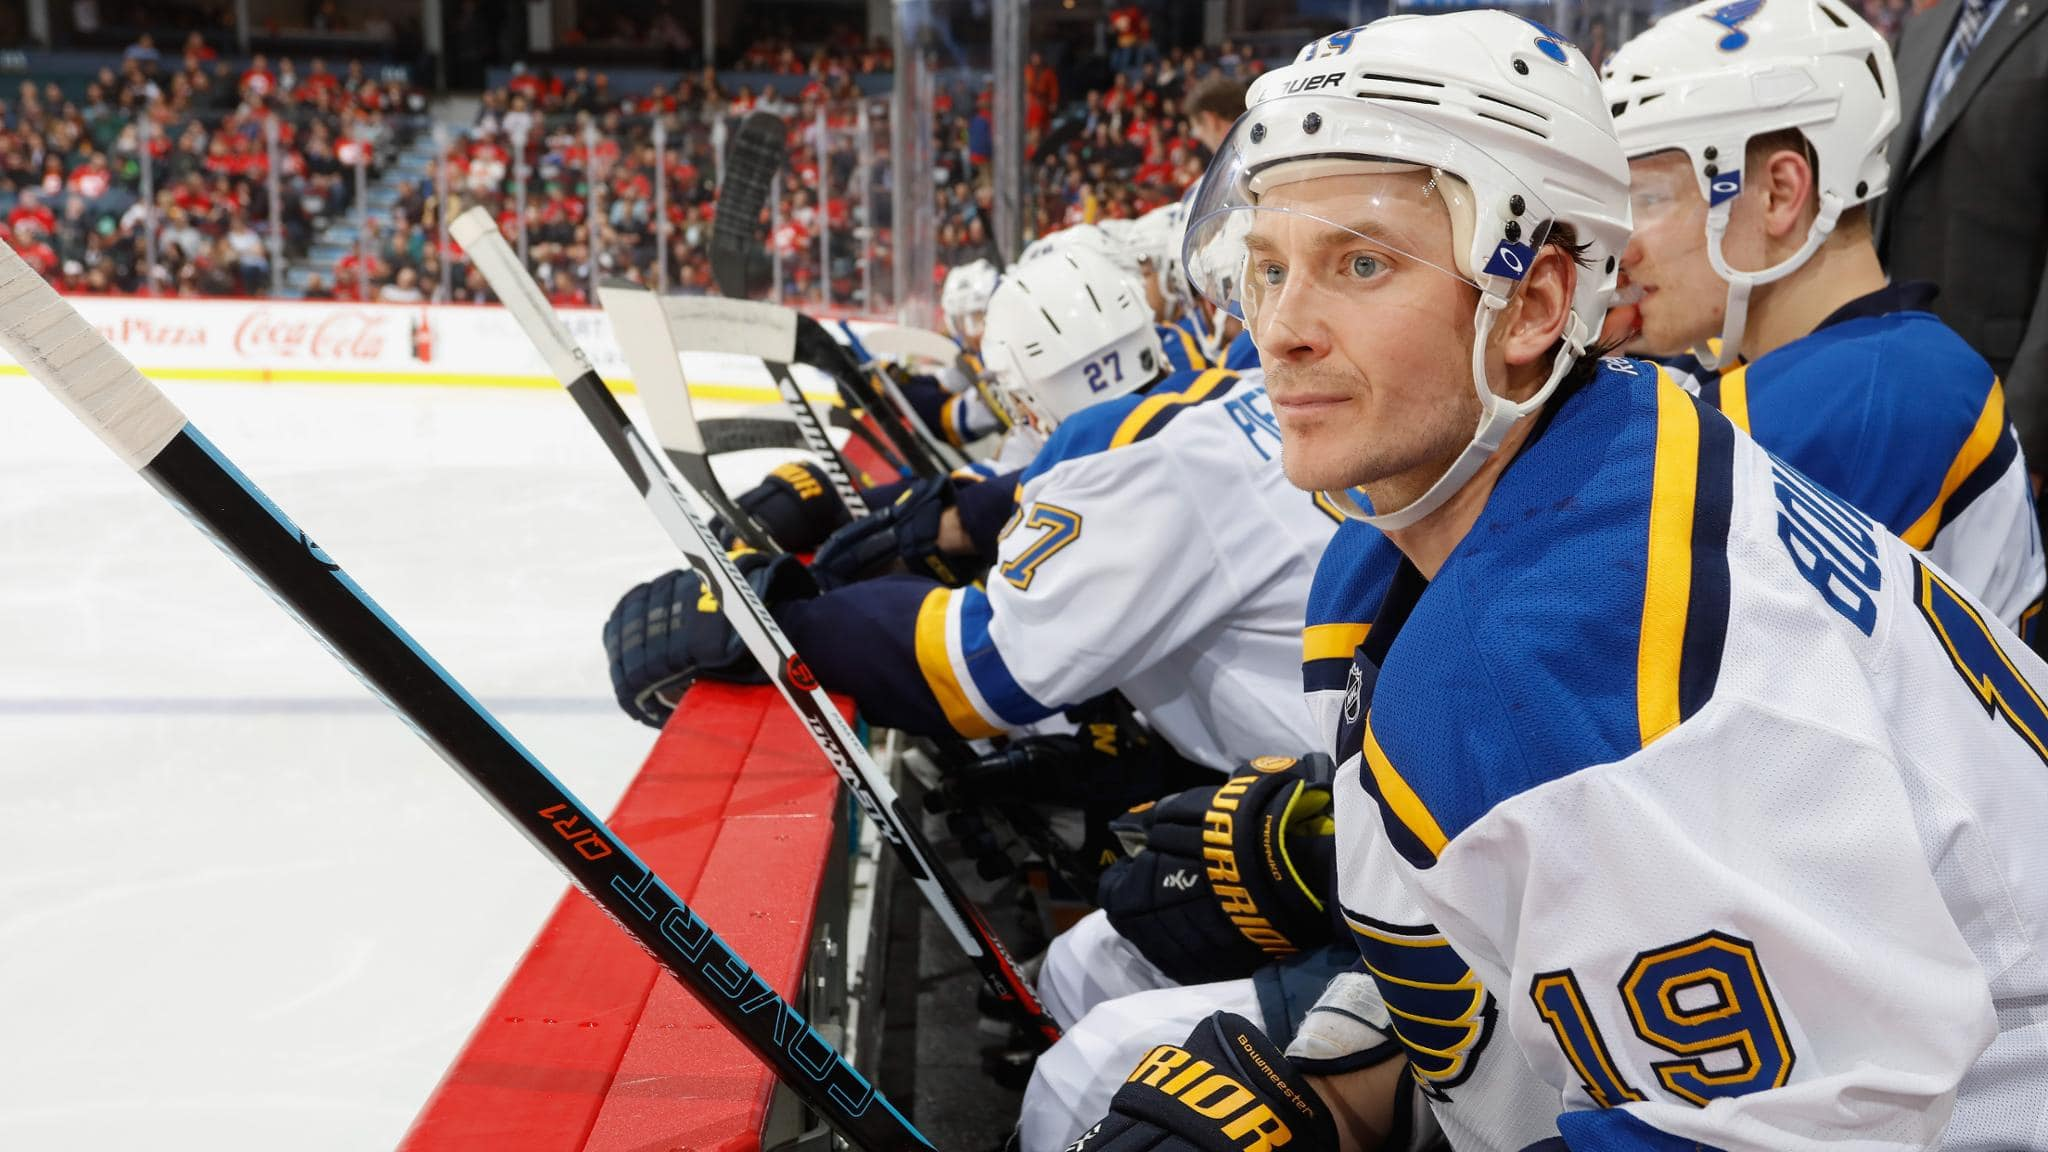 NHL's Jay Bouwmeester Rushed To Hospital After Collapsing Mid-Game, 'Cardiac Episode'